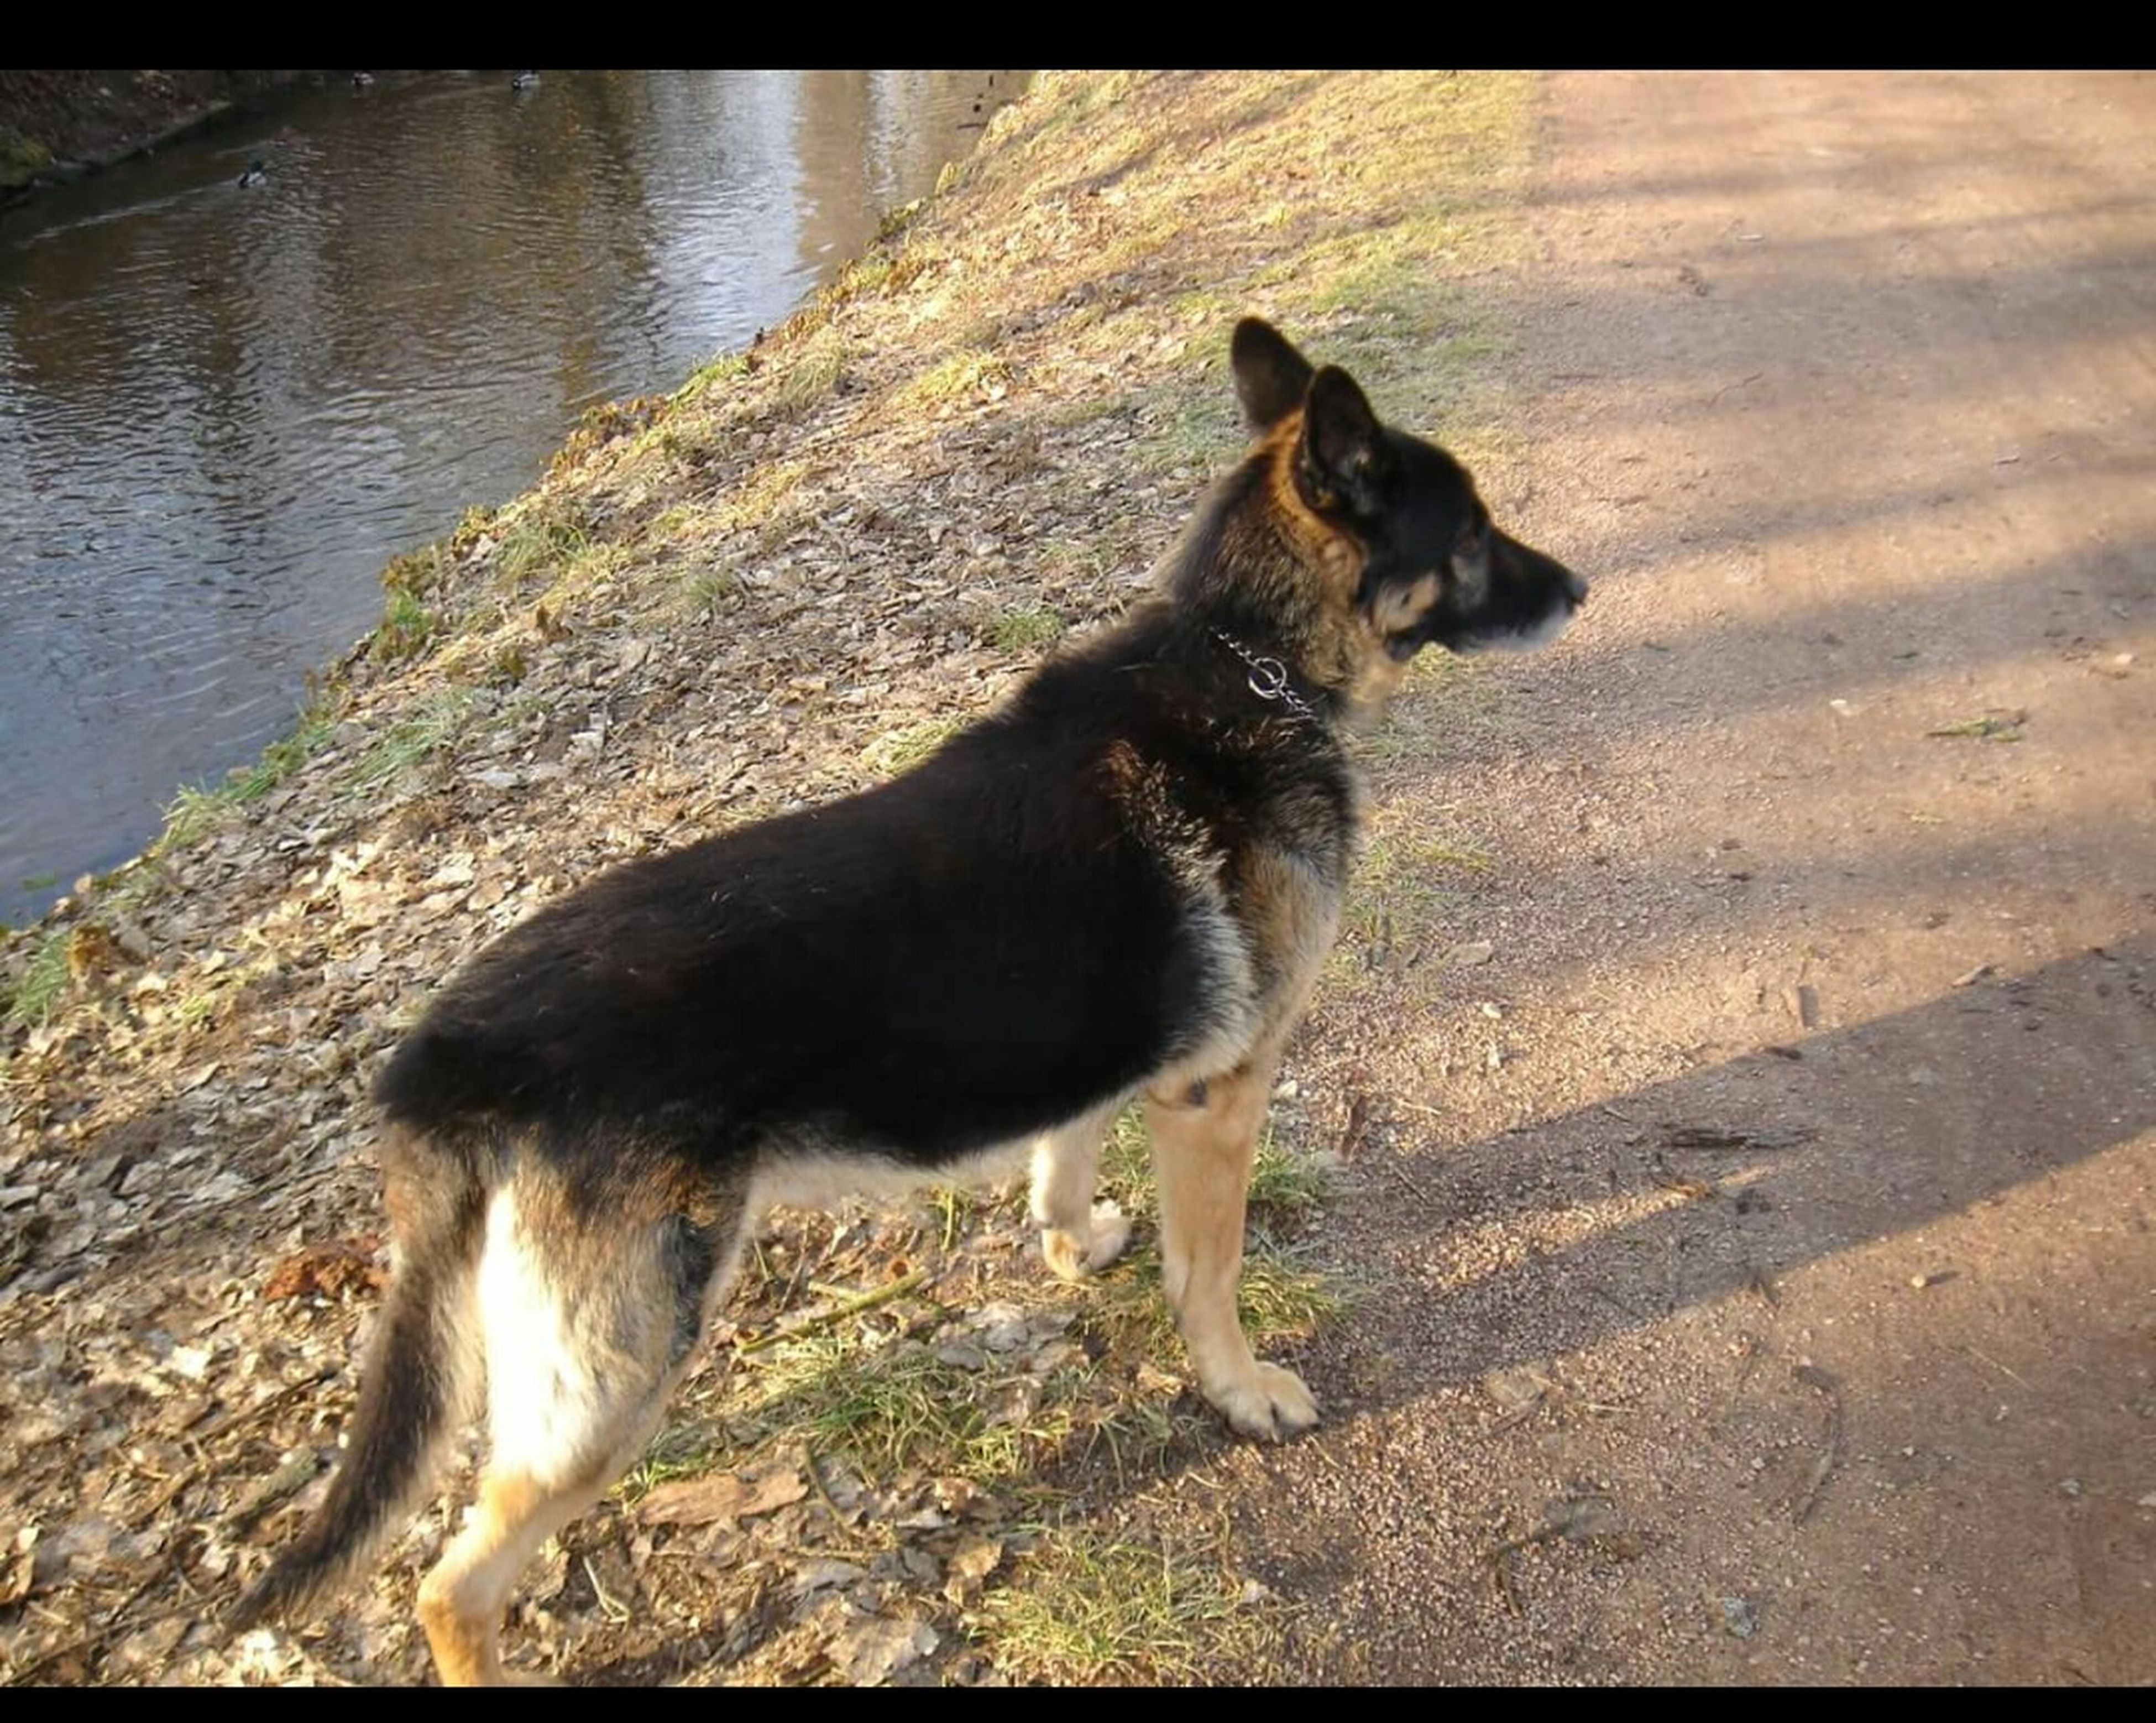 pets, domestic animals, animal themes, one animal, dog, mammal, high angle view, sunlight, water, shadow, full length, outdoors, standing, black color, sitting, day, pet collar, street, looking away, no people